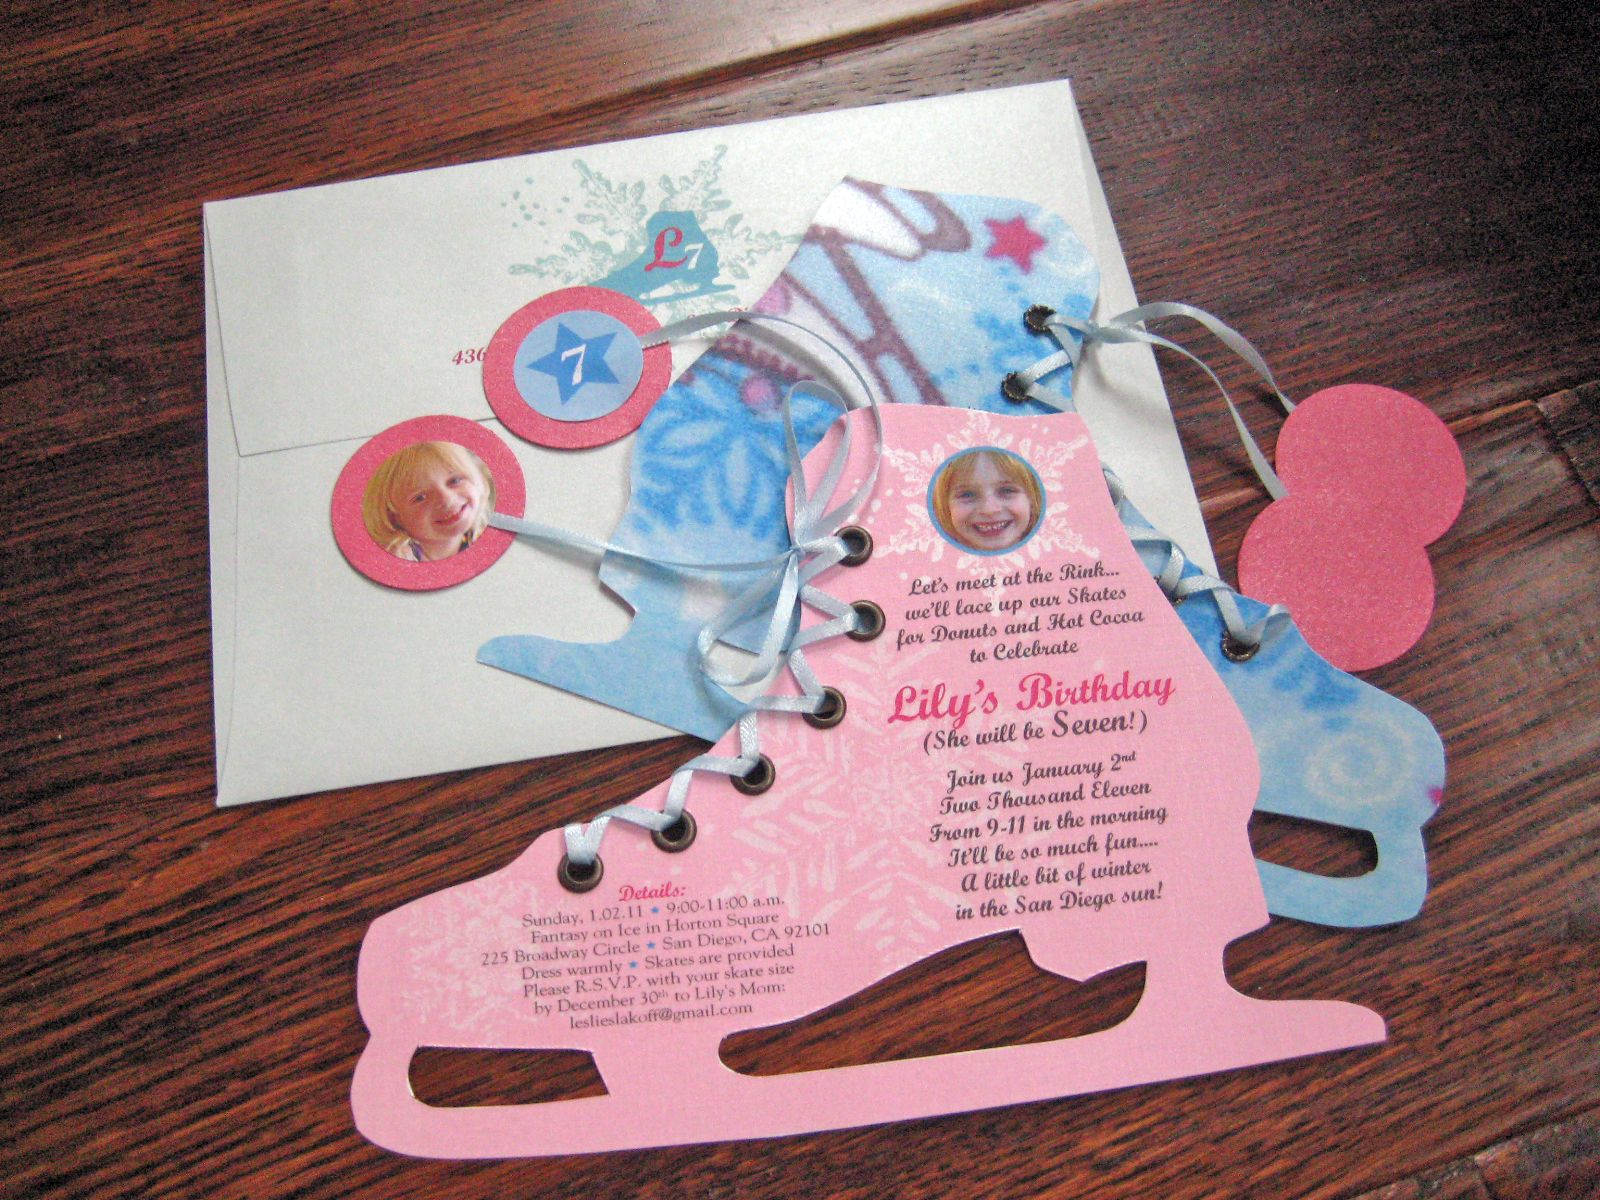 Ice skating party invite ice skating party Pinterest – Ice Skating Party Invitation Wording